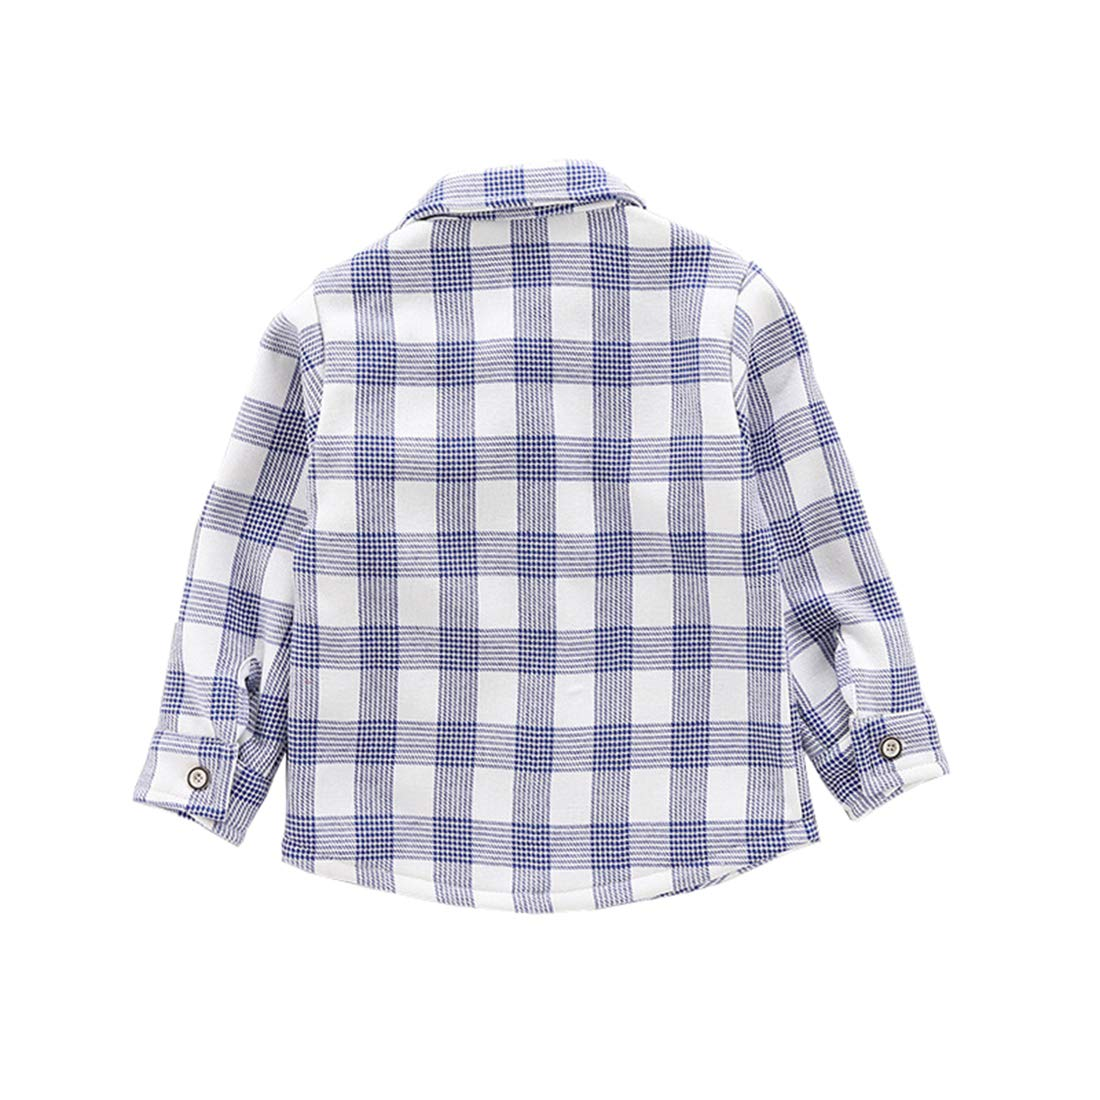 KUKEONON Toddler Boys Thickened Cotton Long Sleeve Cartoon Button Down Plaid Shirt